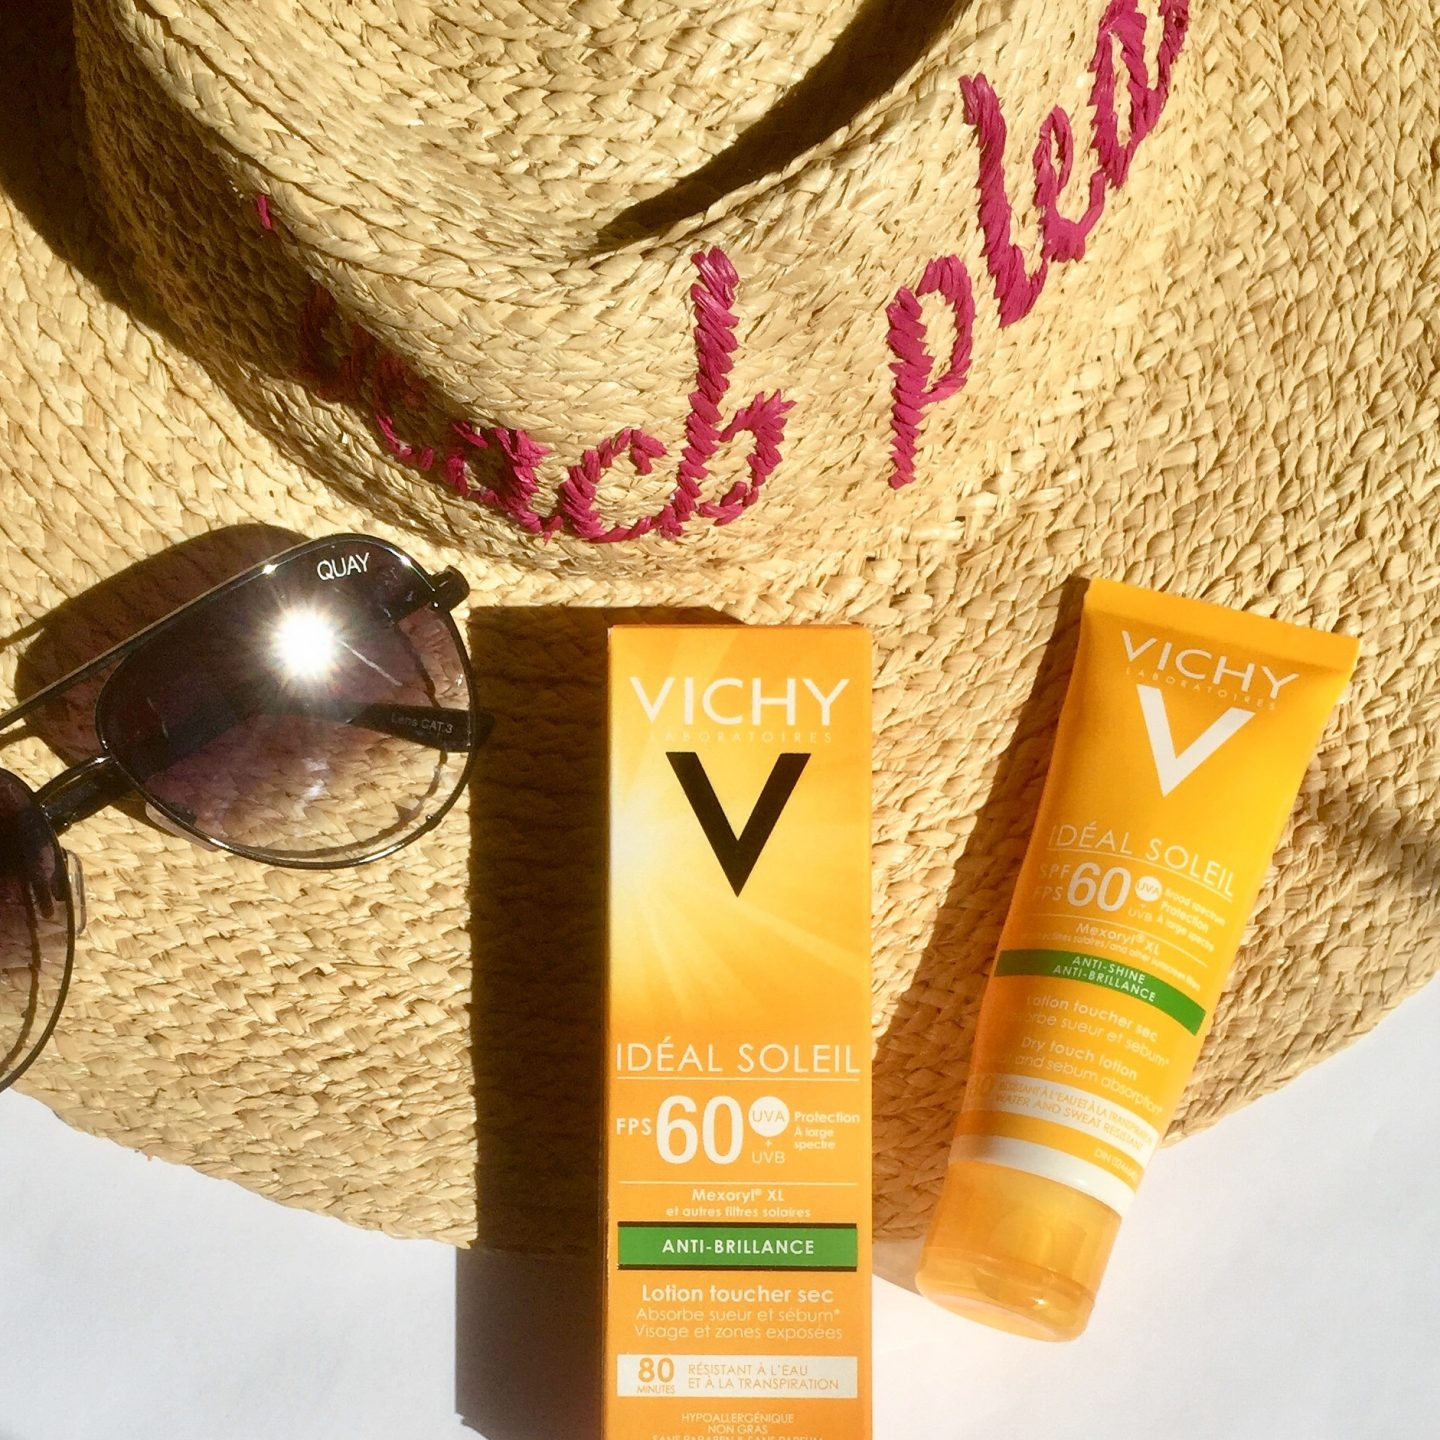 Vichy Idéal Soleil Dry Touch Lotion